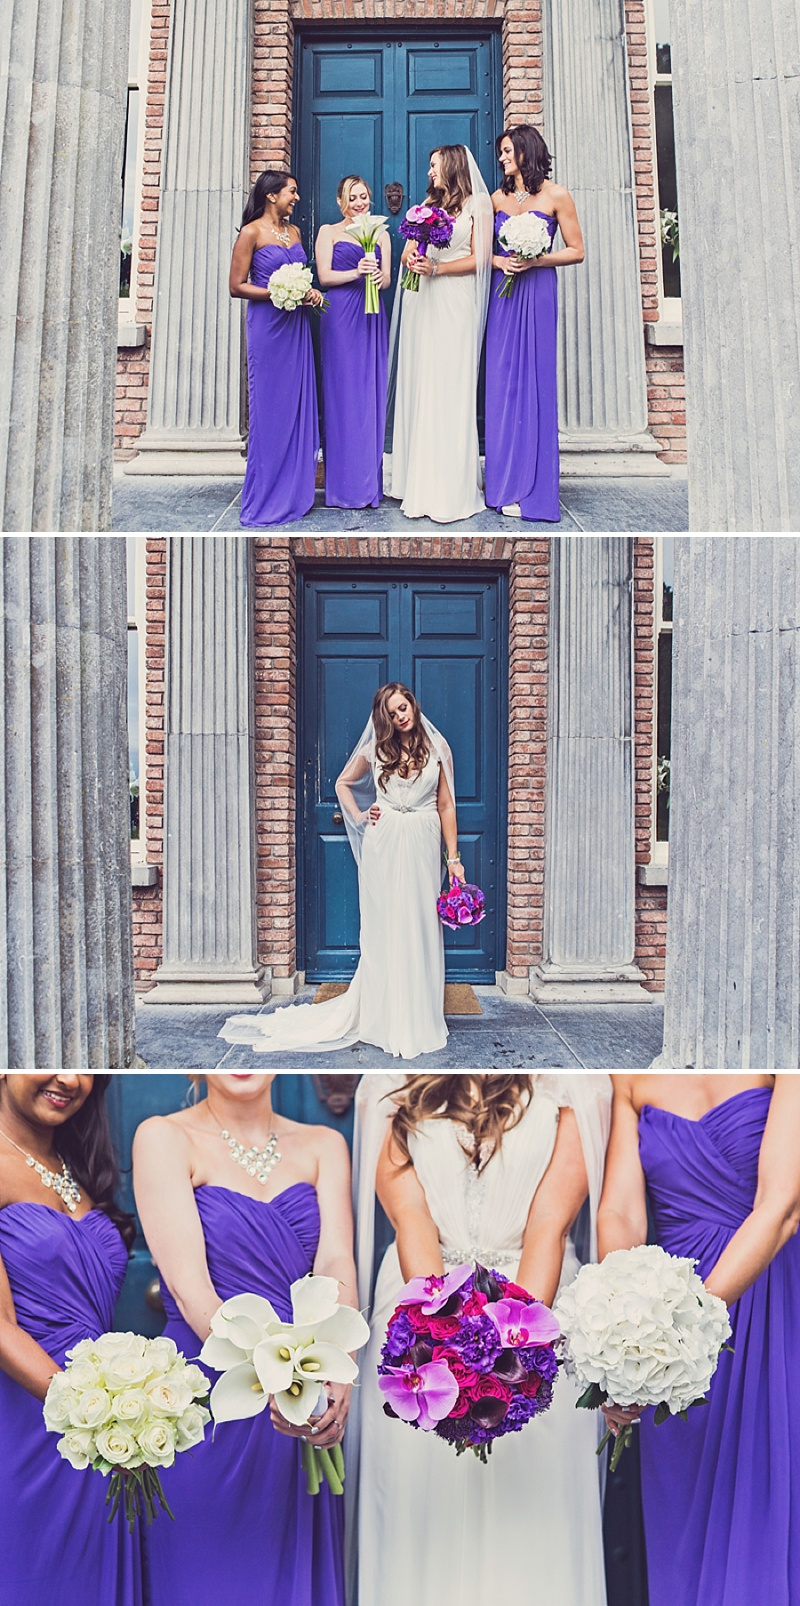 A Purple And Ivory Contemporary Wedding At Kilshane House In Tipperary Ireland With Bride In Aspen By Jenny Packham And Nude Christian Louboutin Peeptoes Images By Claire Penn_0007